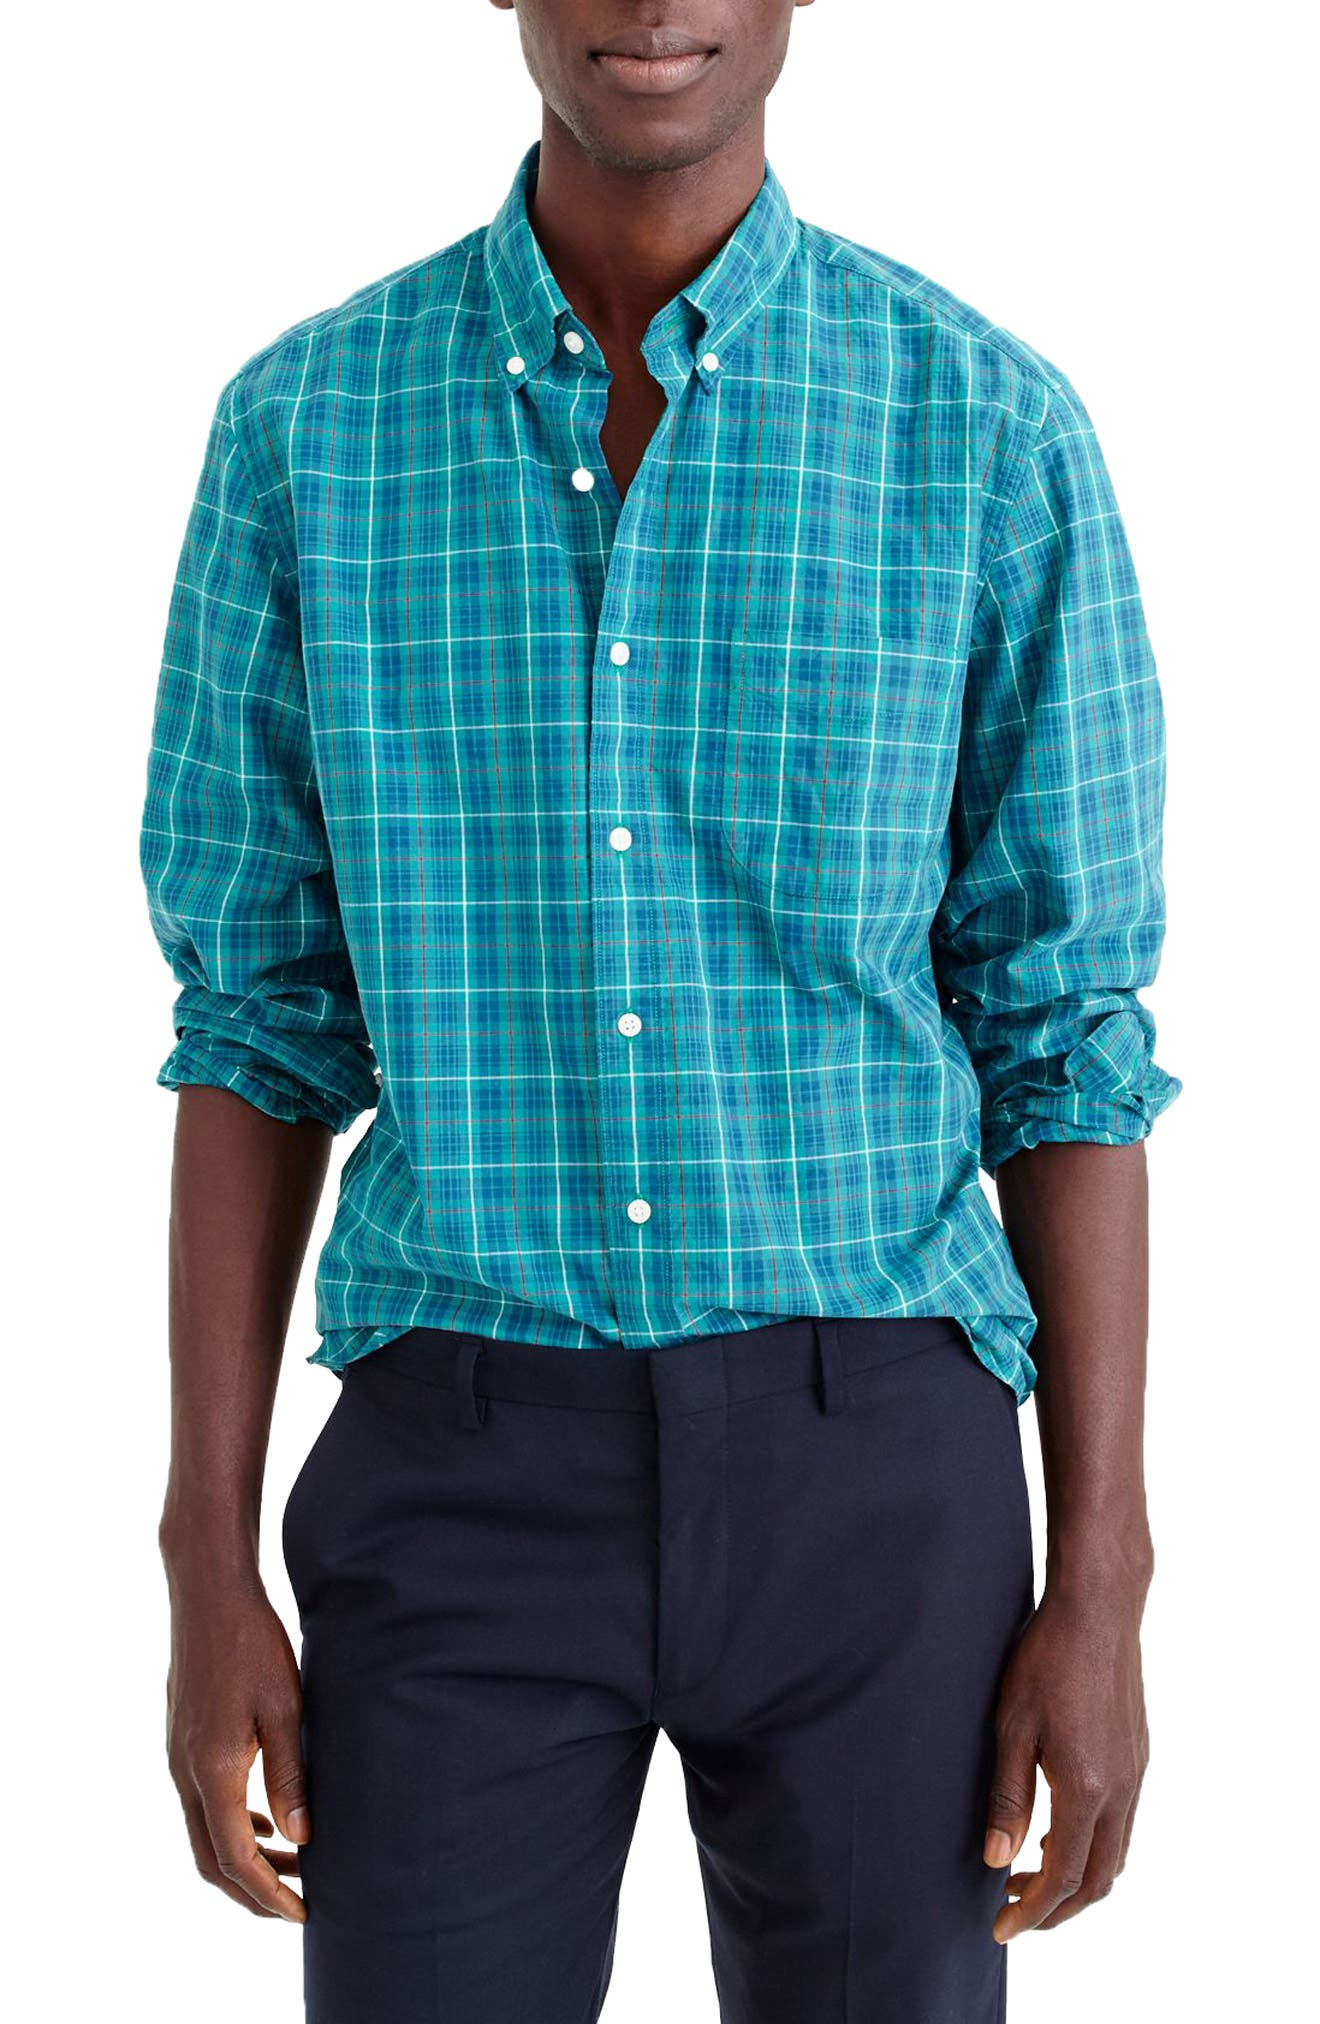 Alternate Image 1 Selected - J.Crew Slim Fit Stretch Secret Wash Plaid Sport Shirt